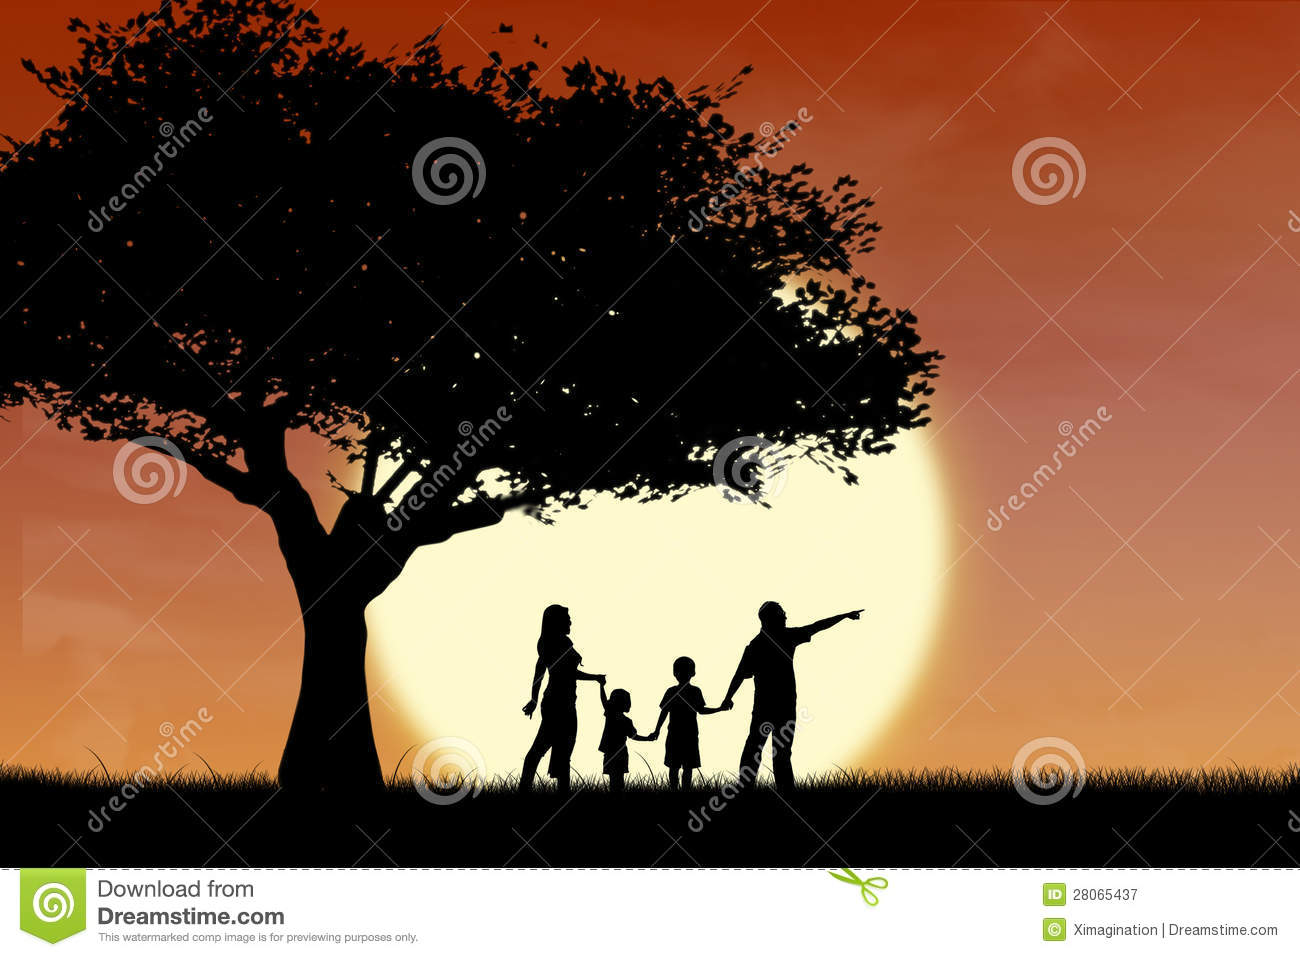 Girl Boy Love Birds Wallpaper Download Family And Tree Silhouette By Sunset Royalty Free Stock